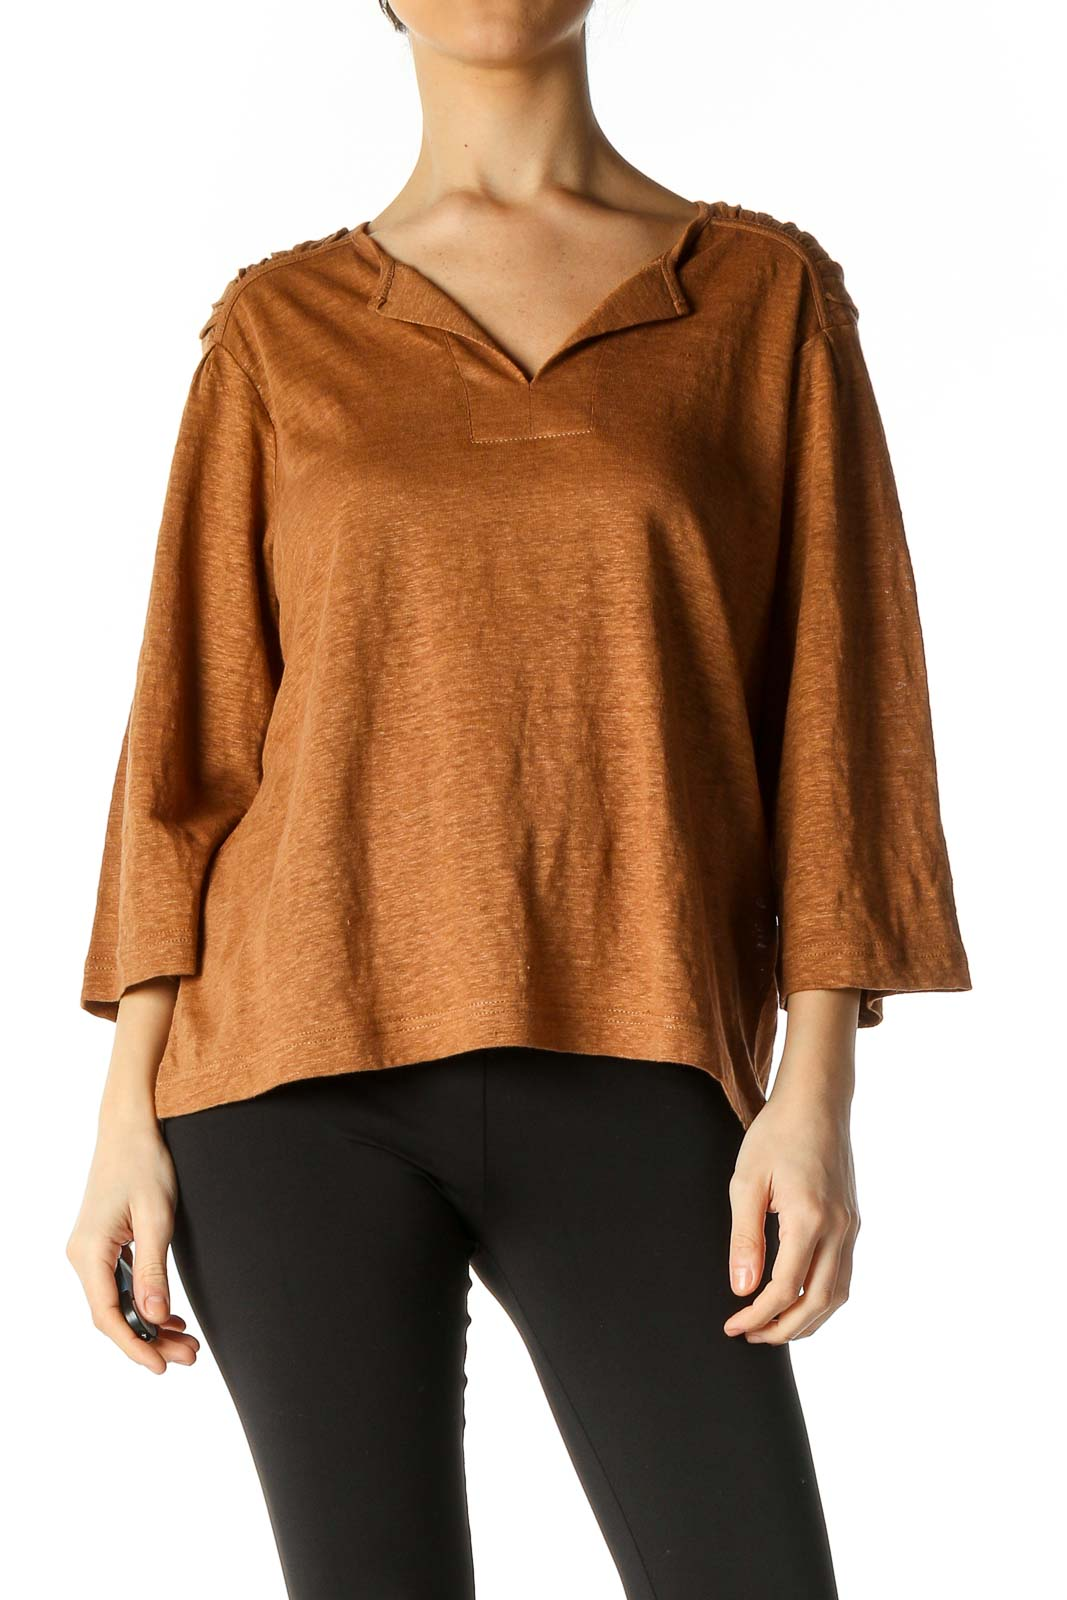 Orange Solid Casual Blouse Front